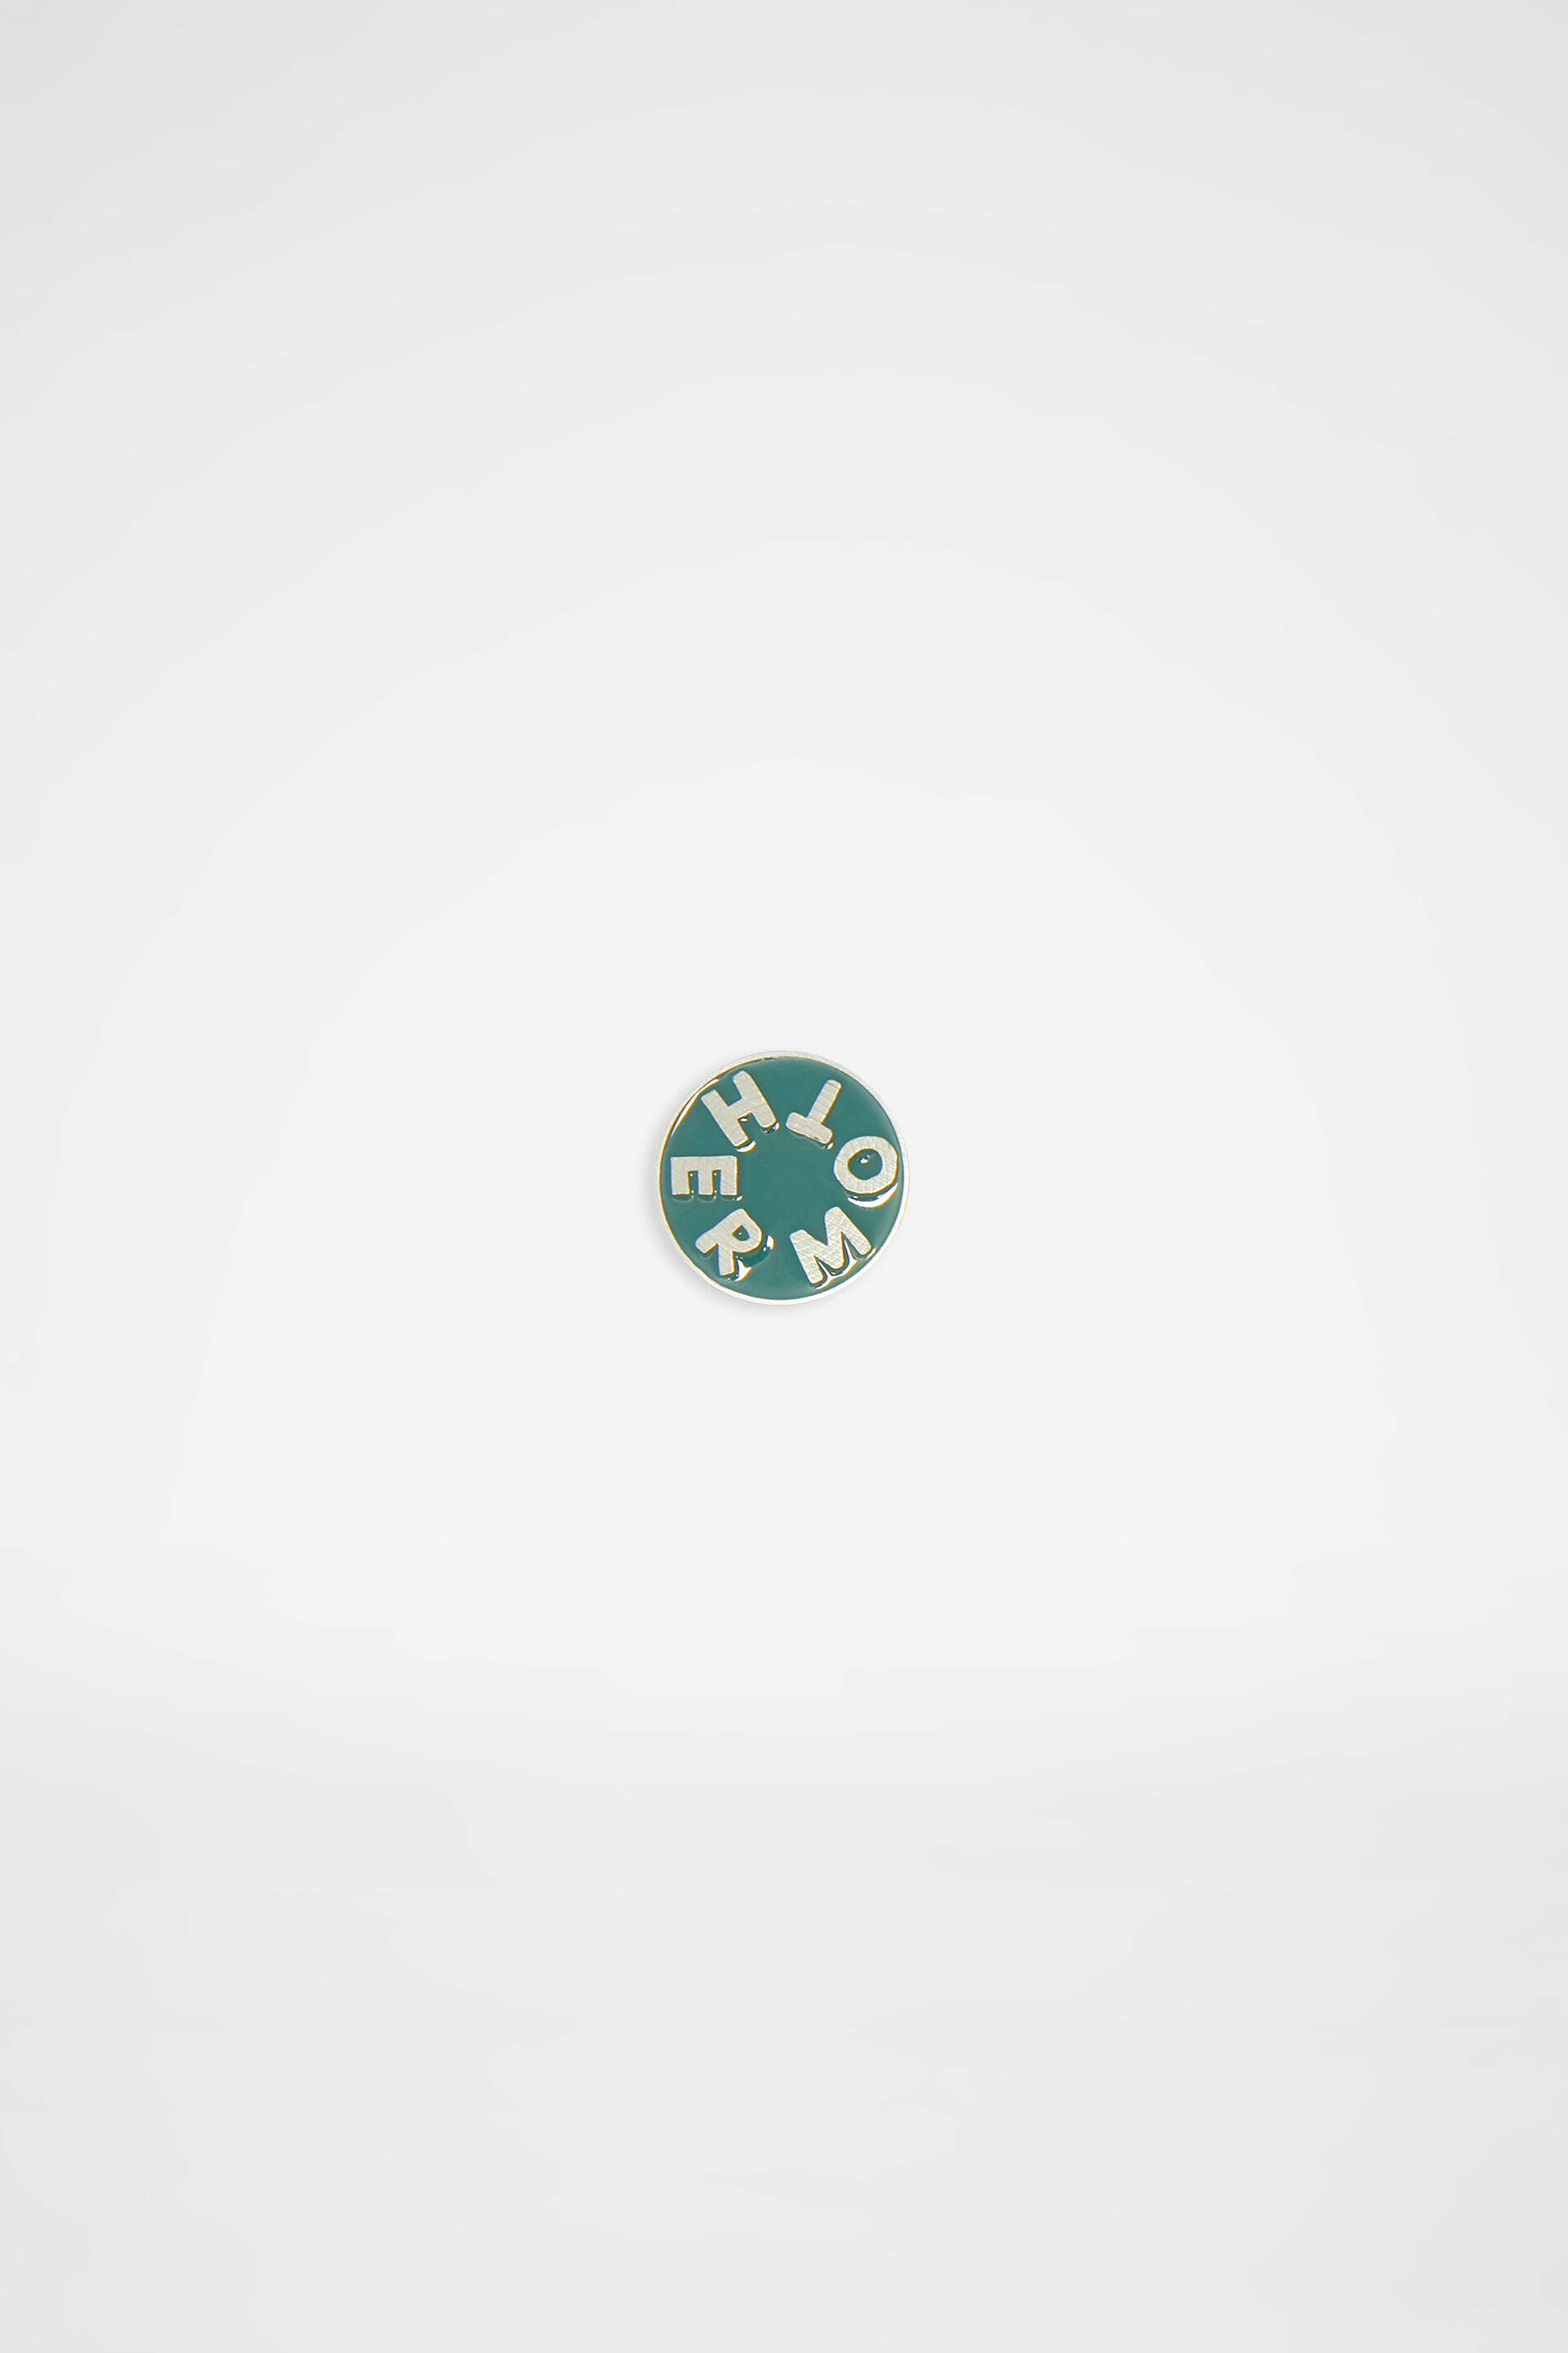 Pin Mother, green, large